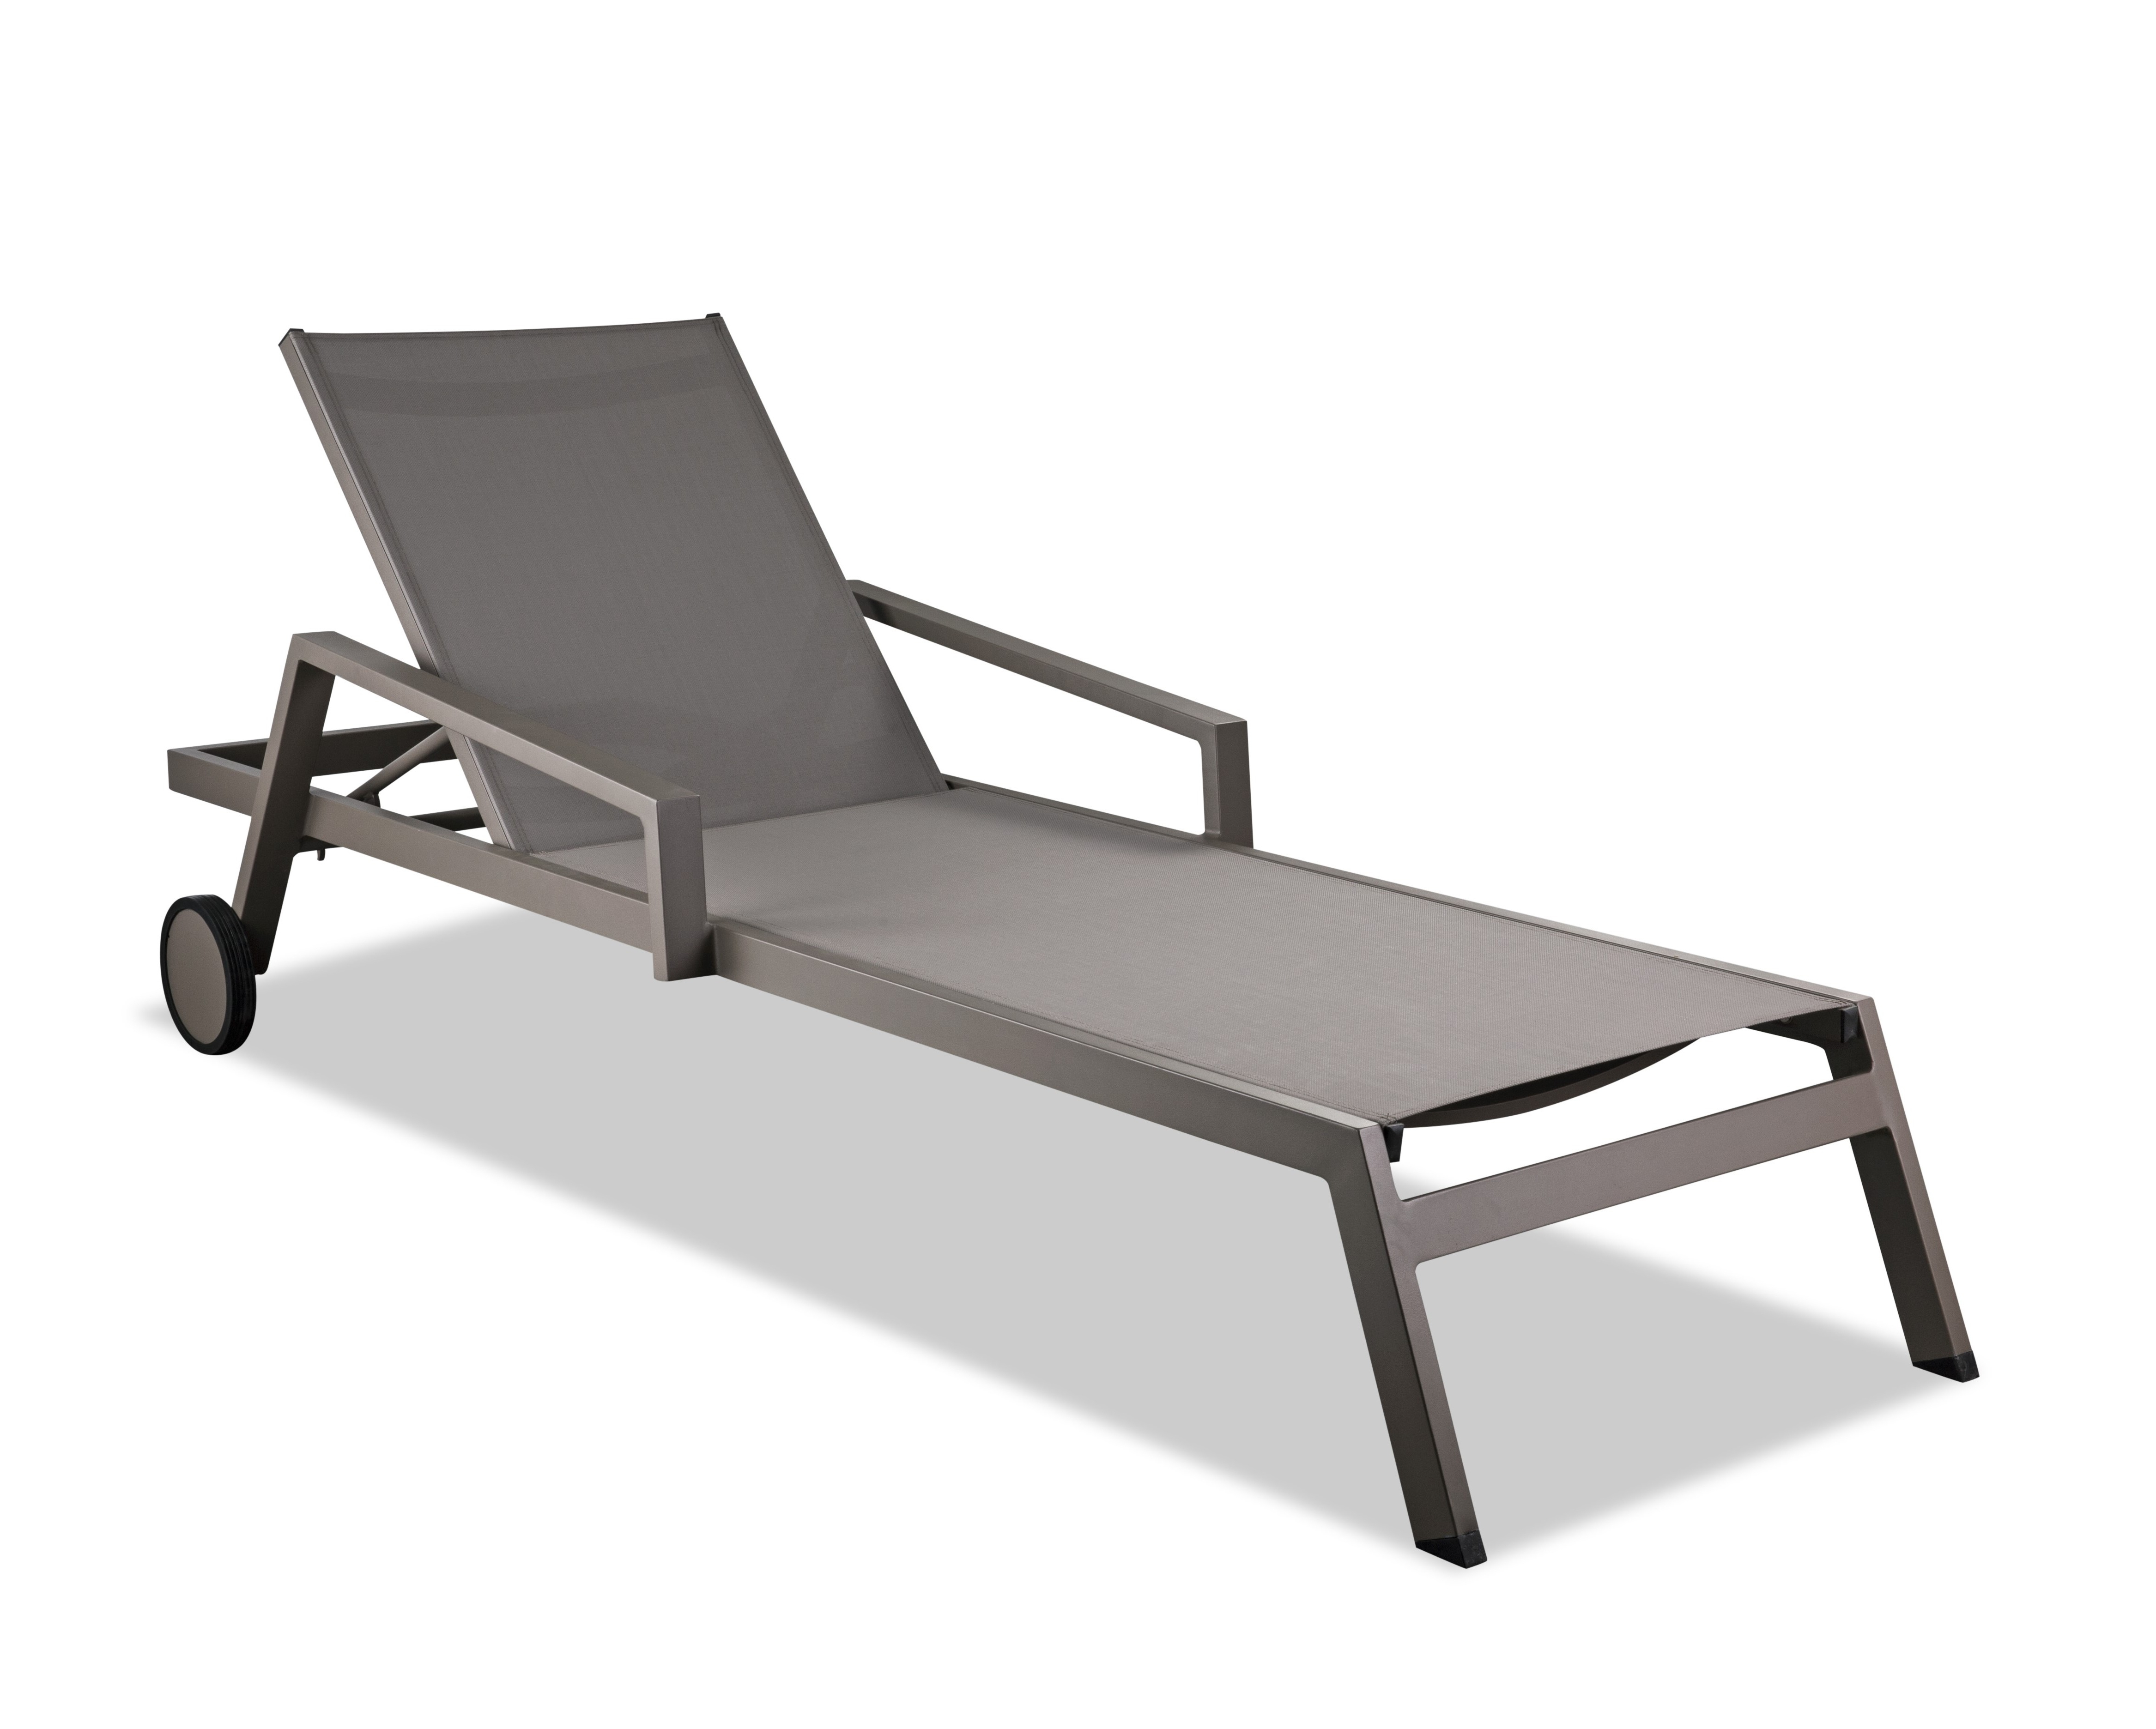 Metropolitandecor Throughout Favorite Outdoor Cart Wheel Adjustable Chaise Lounge Chairs (View 7 of 25)